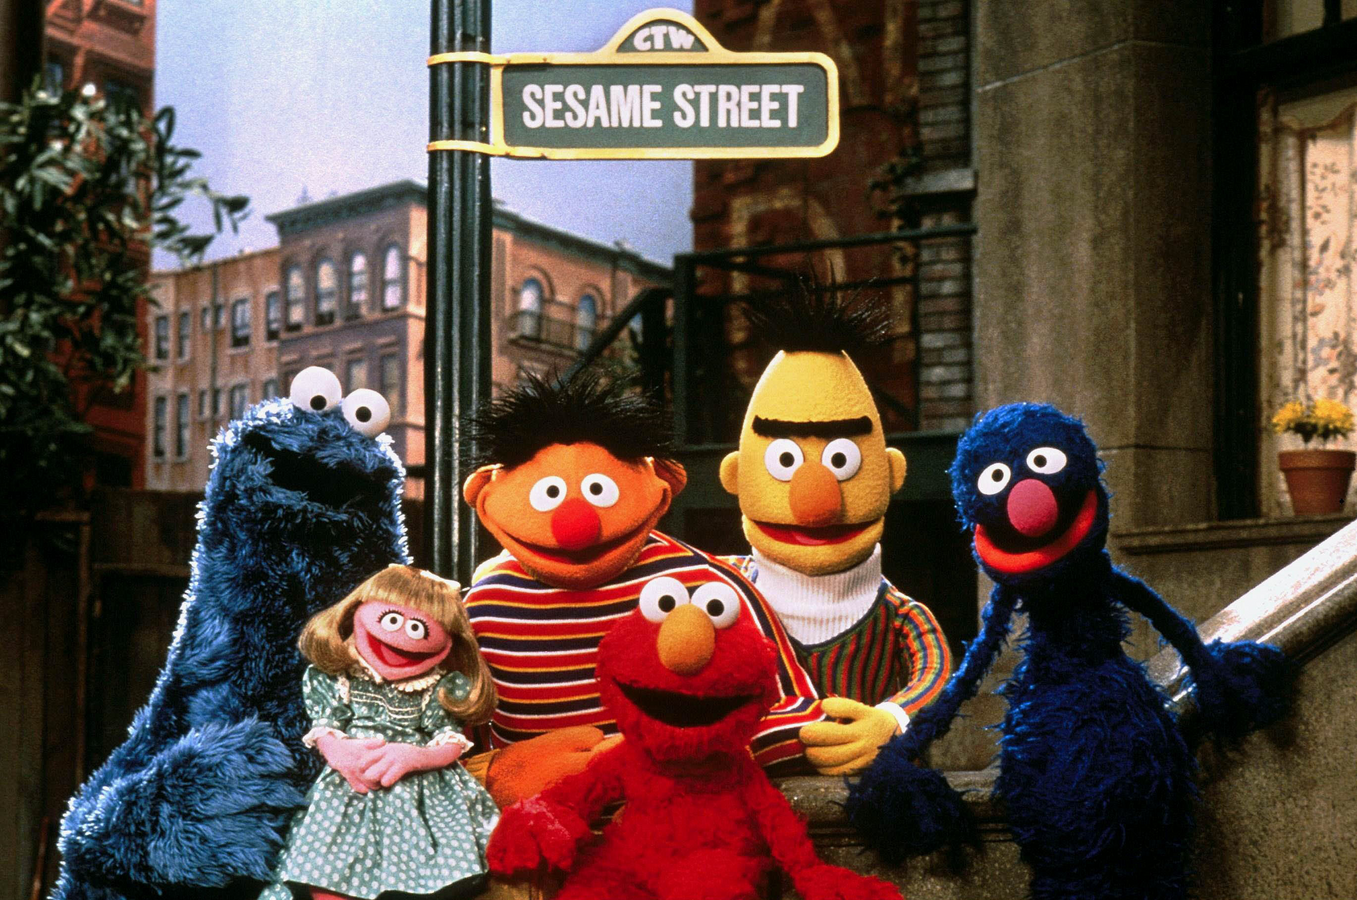 50 years of 'Sesame Street': What the show's history can